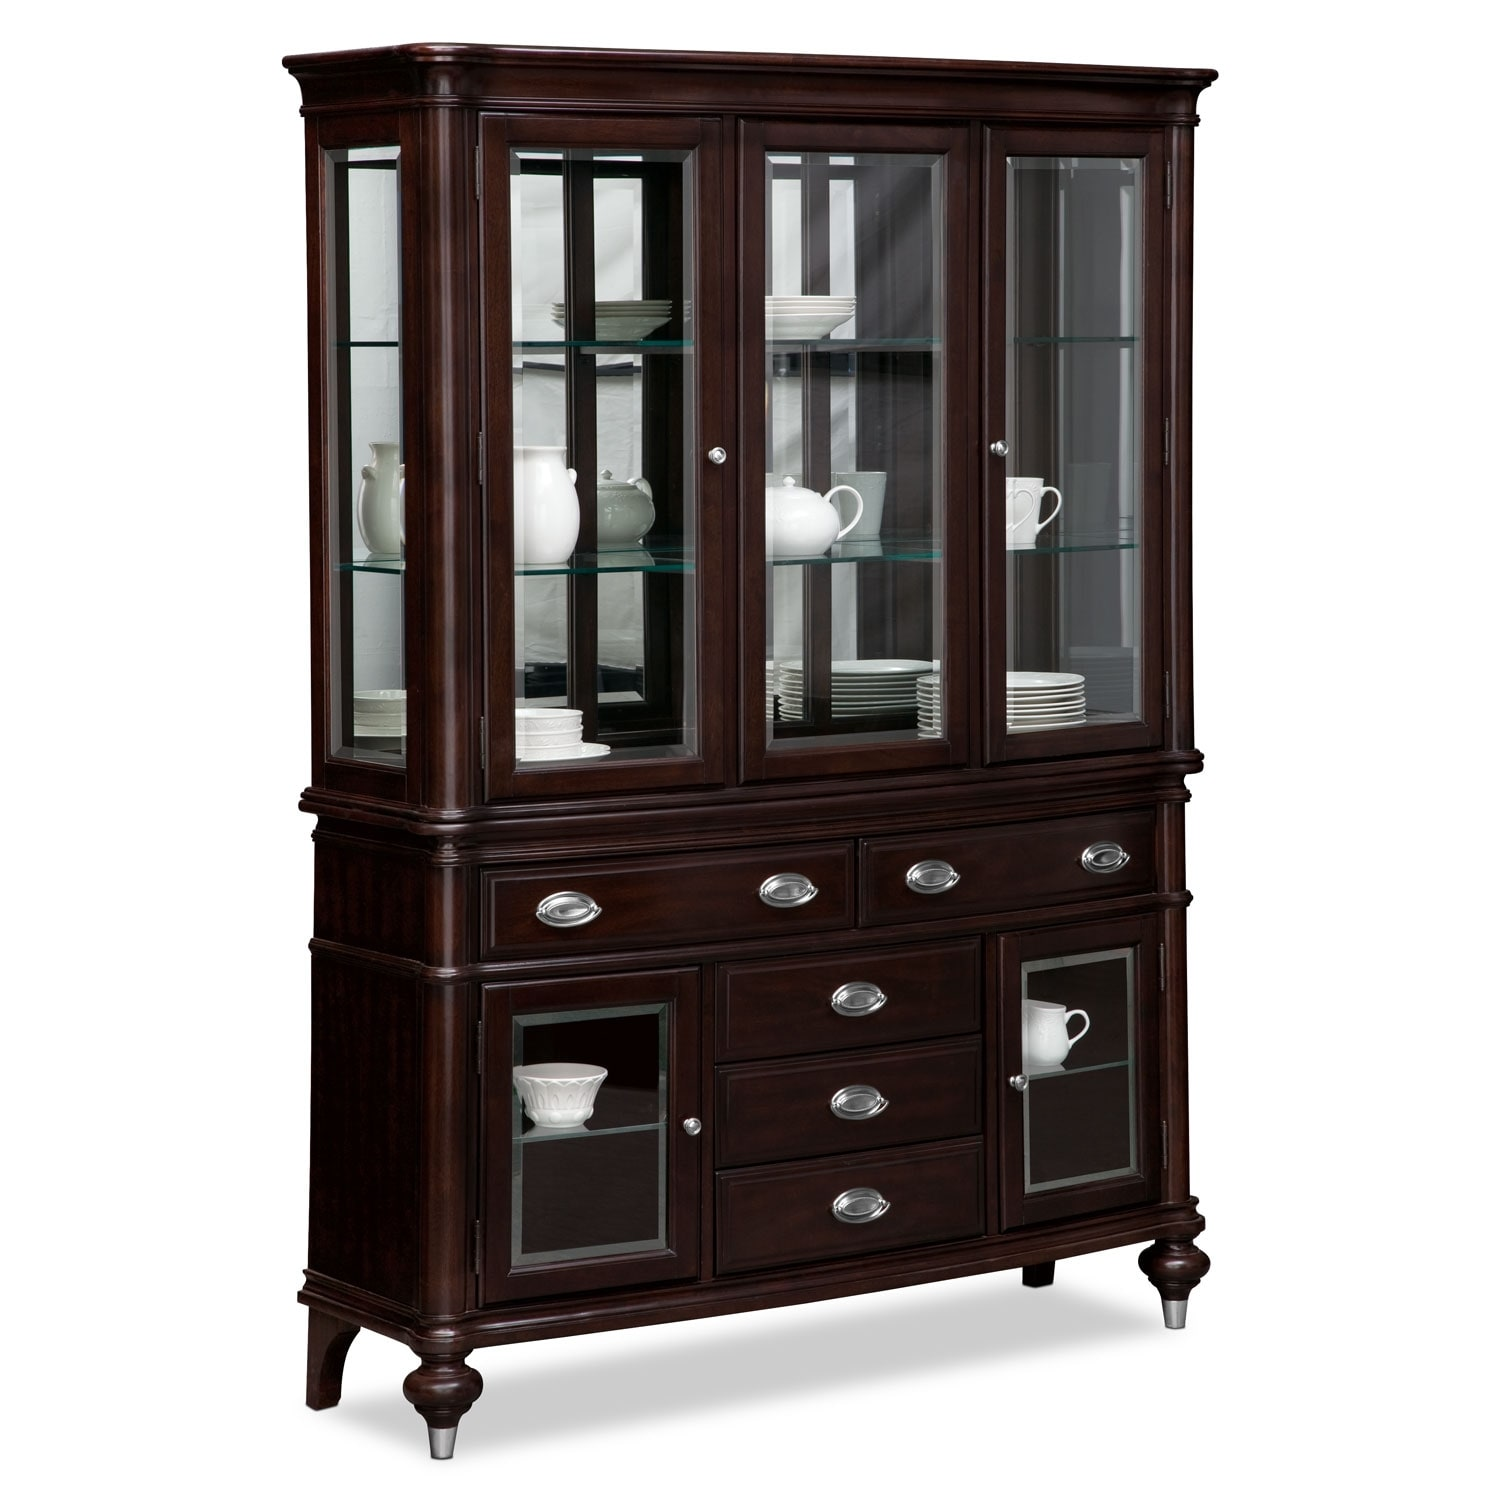 Esquire buffet and hutch cherry american signature for Dining cabinet furniture